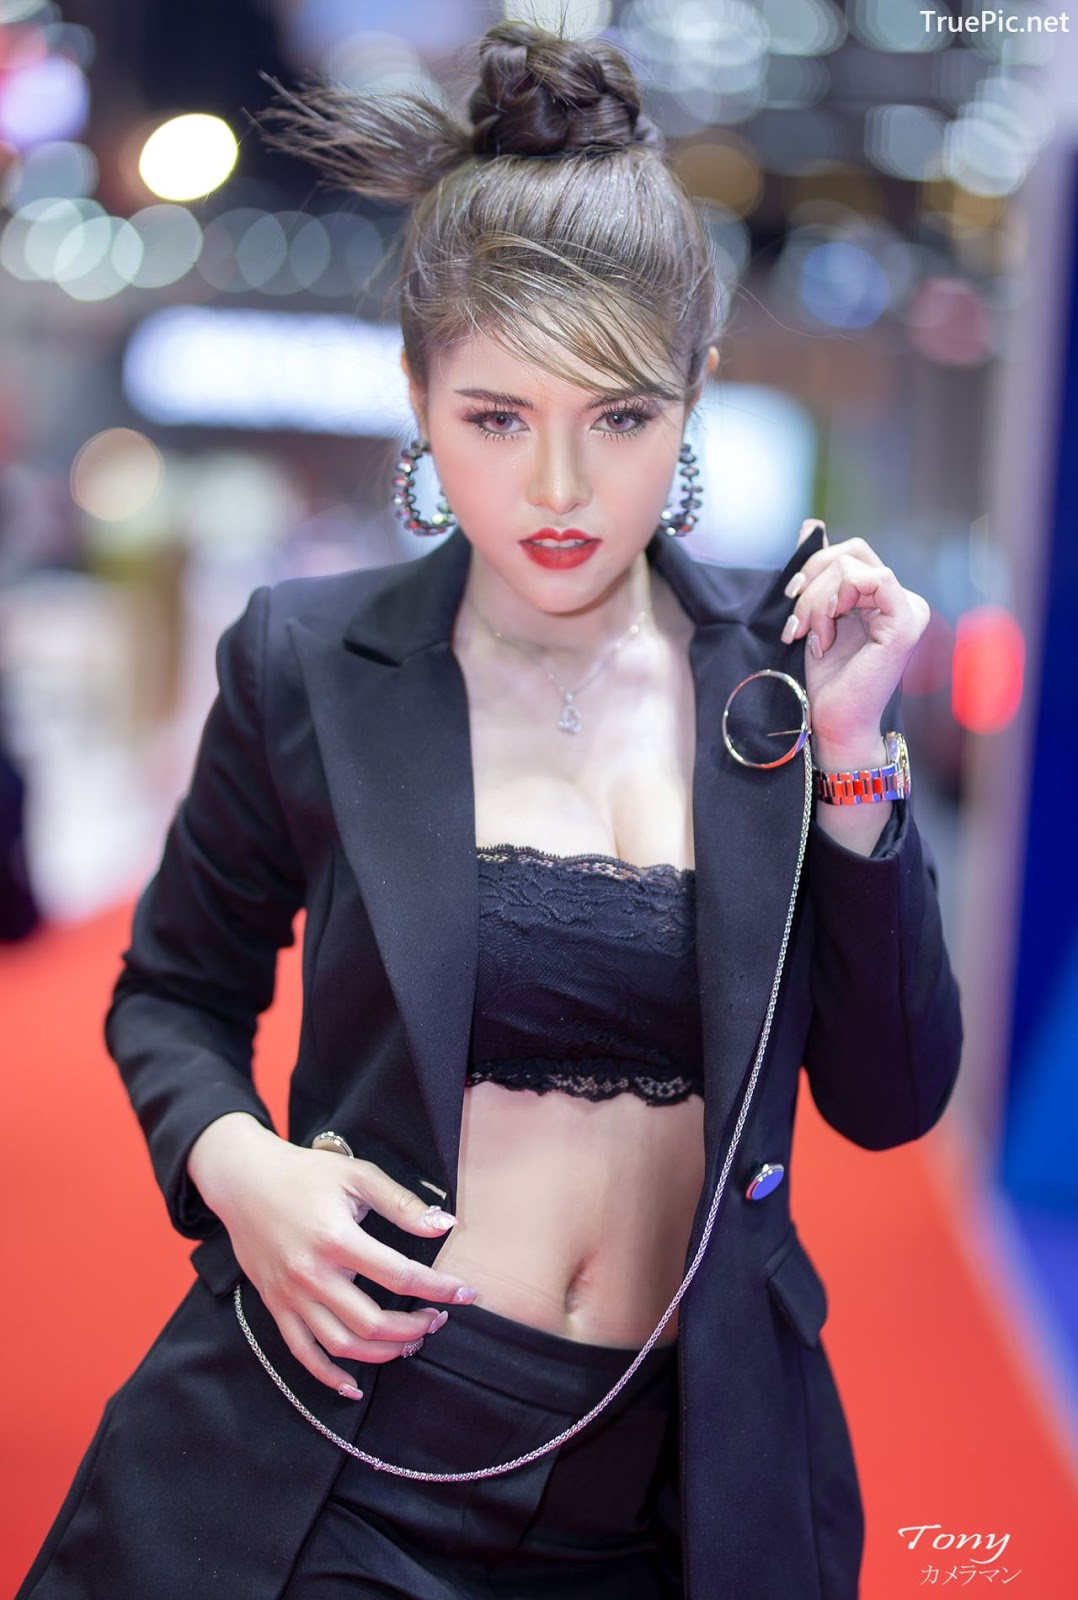 Image-Thailand-Hot-Model-Thai-Racing-Girl-At-Motor-Show-2019-TruePic.net- Picture-6